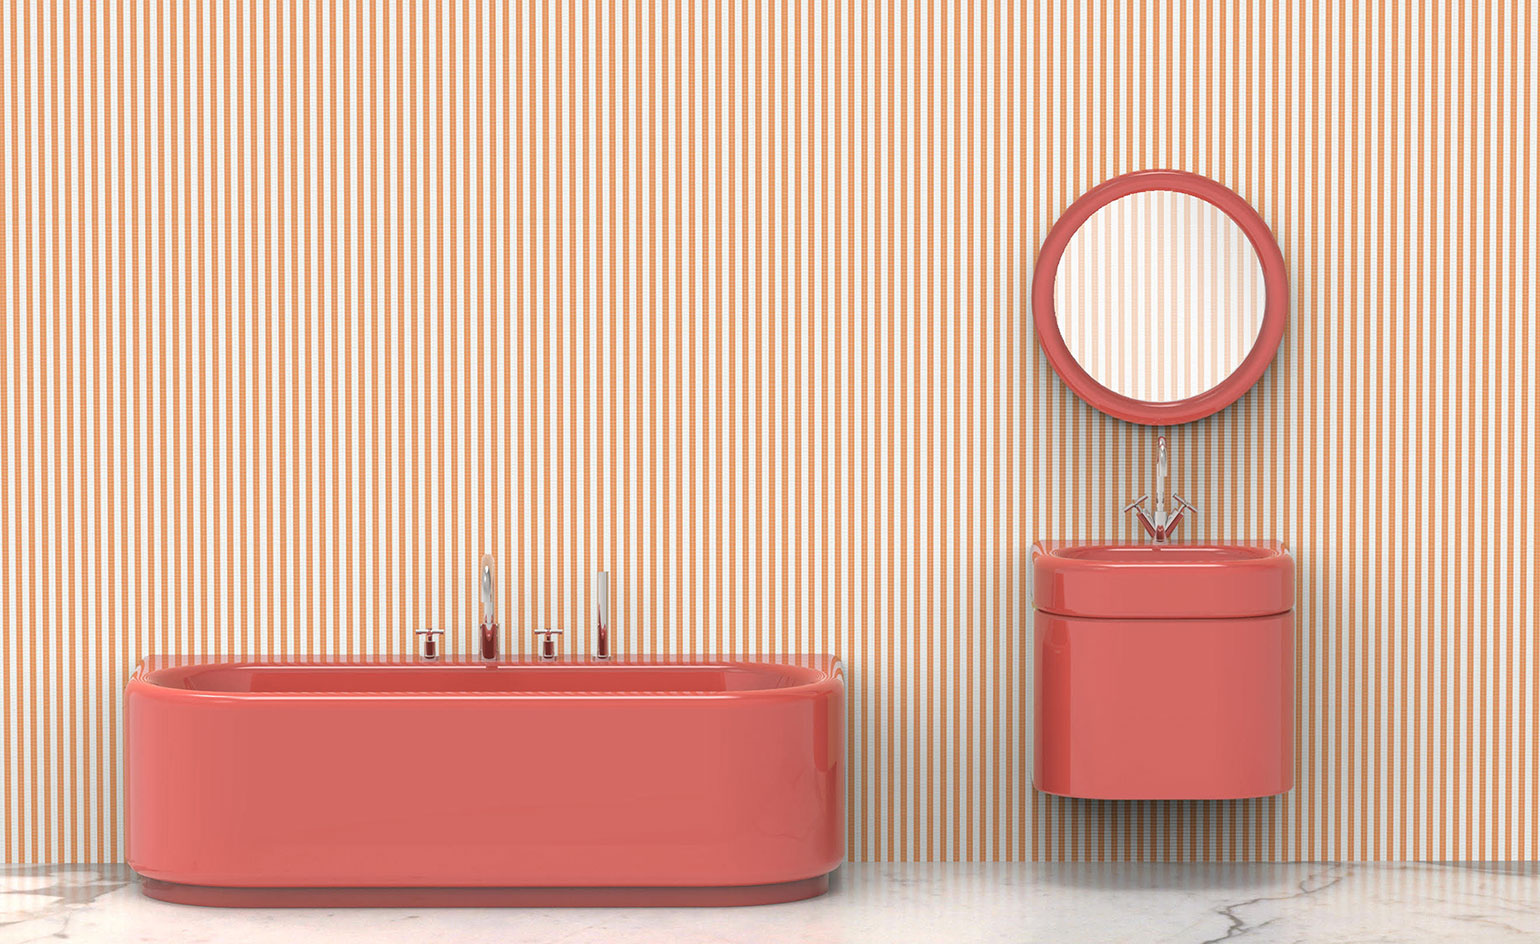 India Mahdavi's new bathroom collection for Bisazza